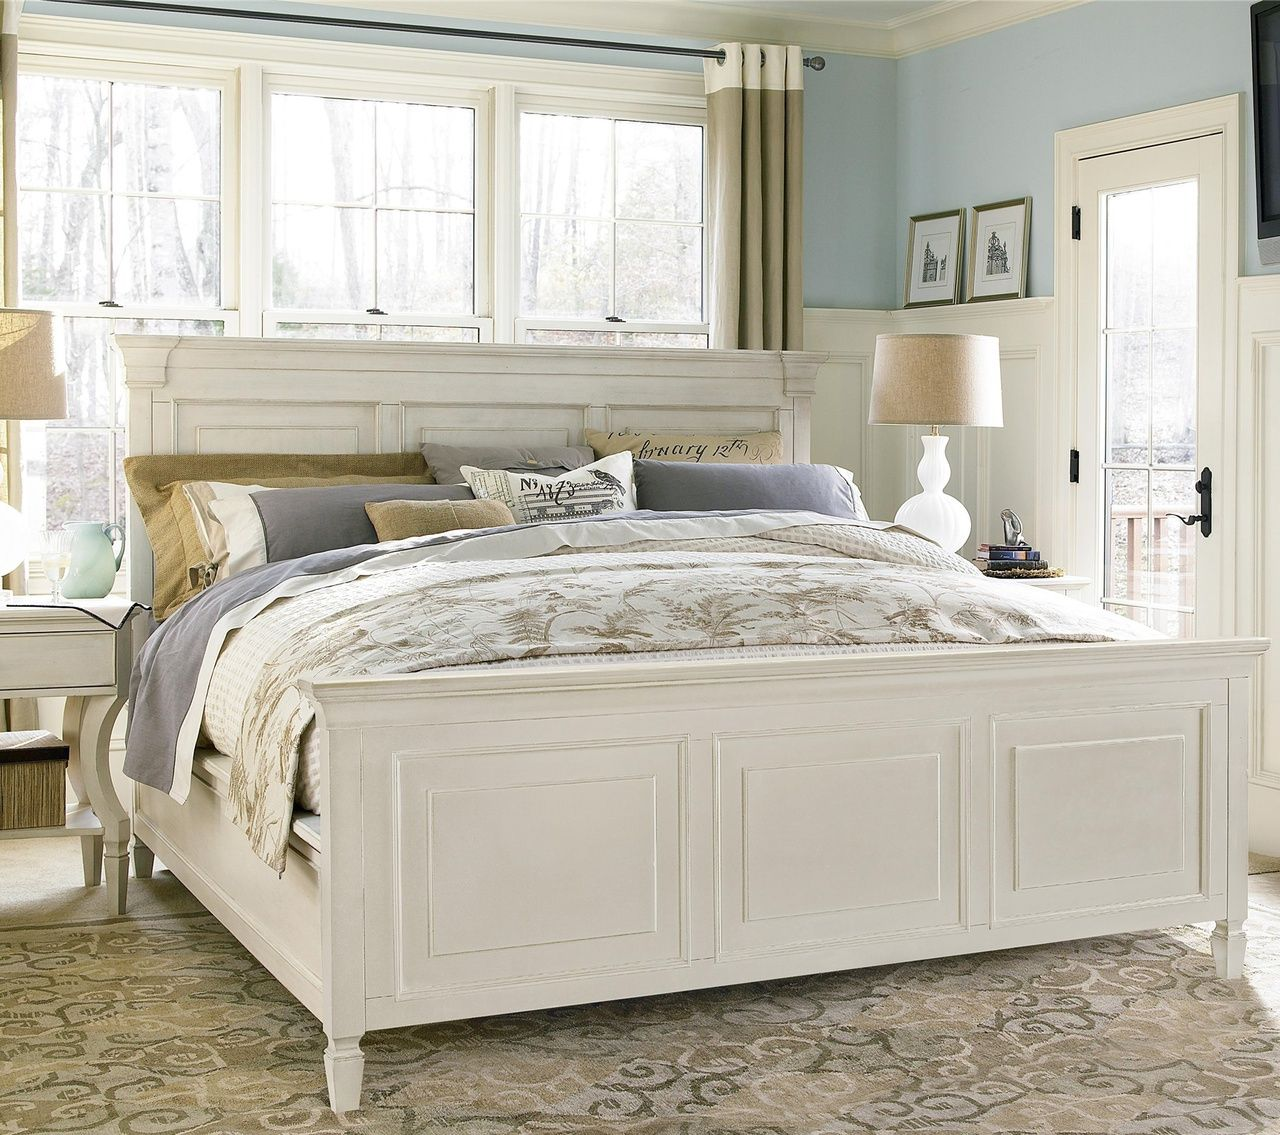 Country Chic White Queen Size Bed Frame